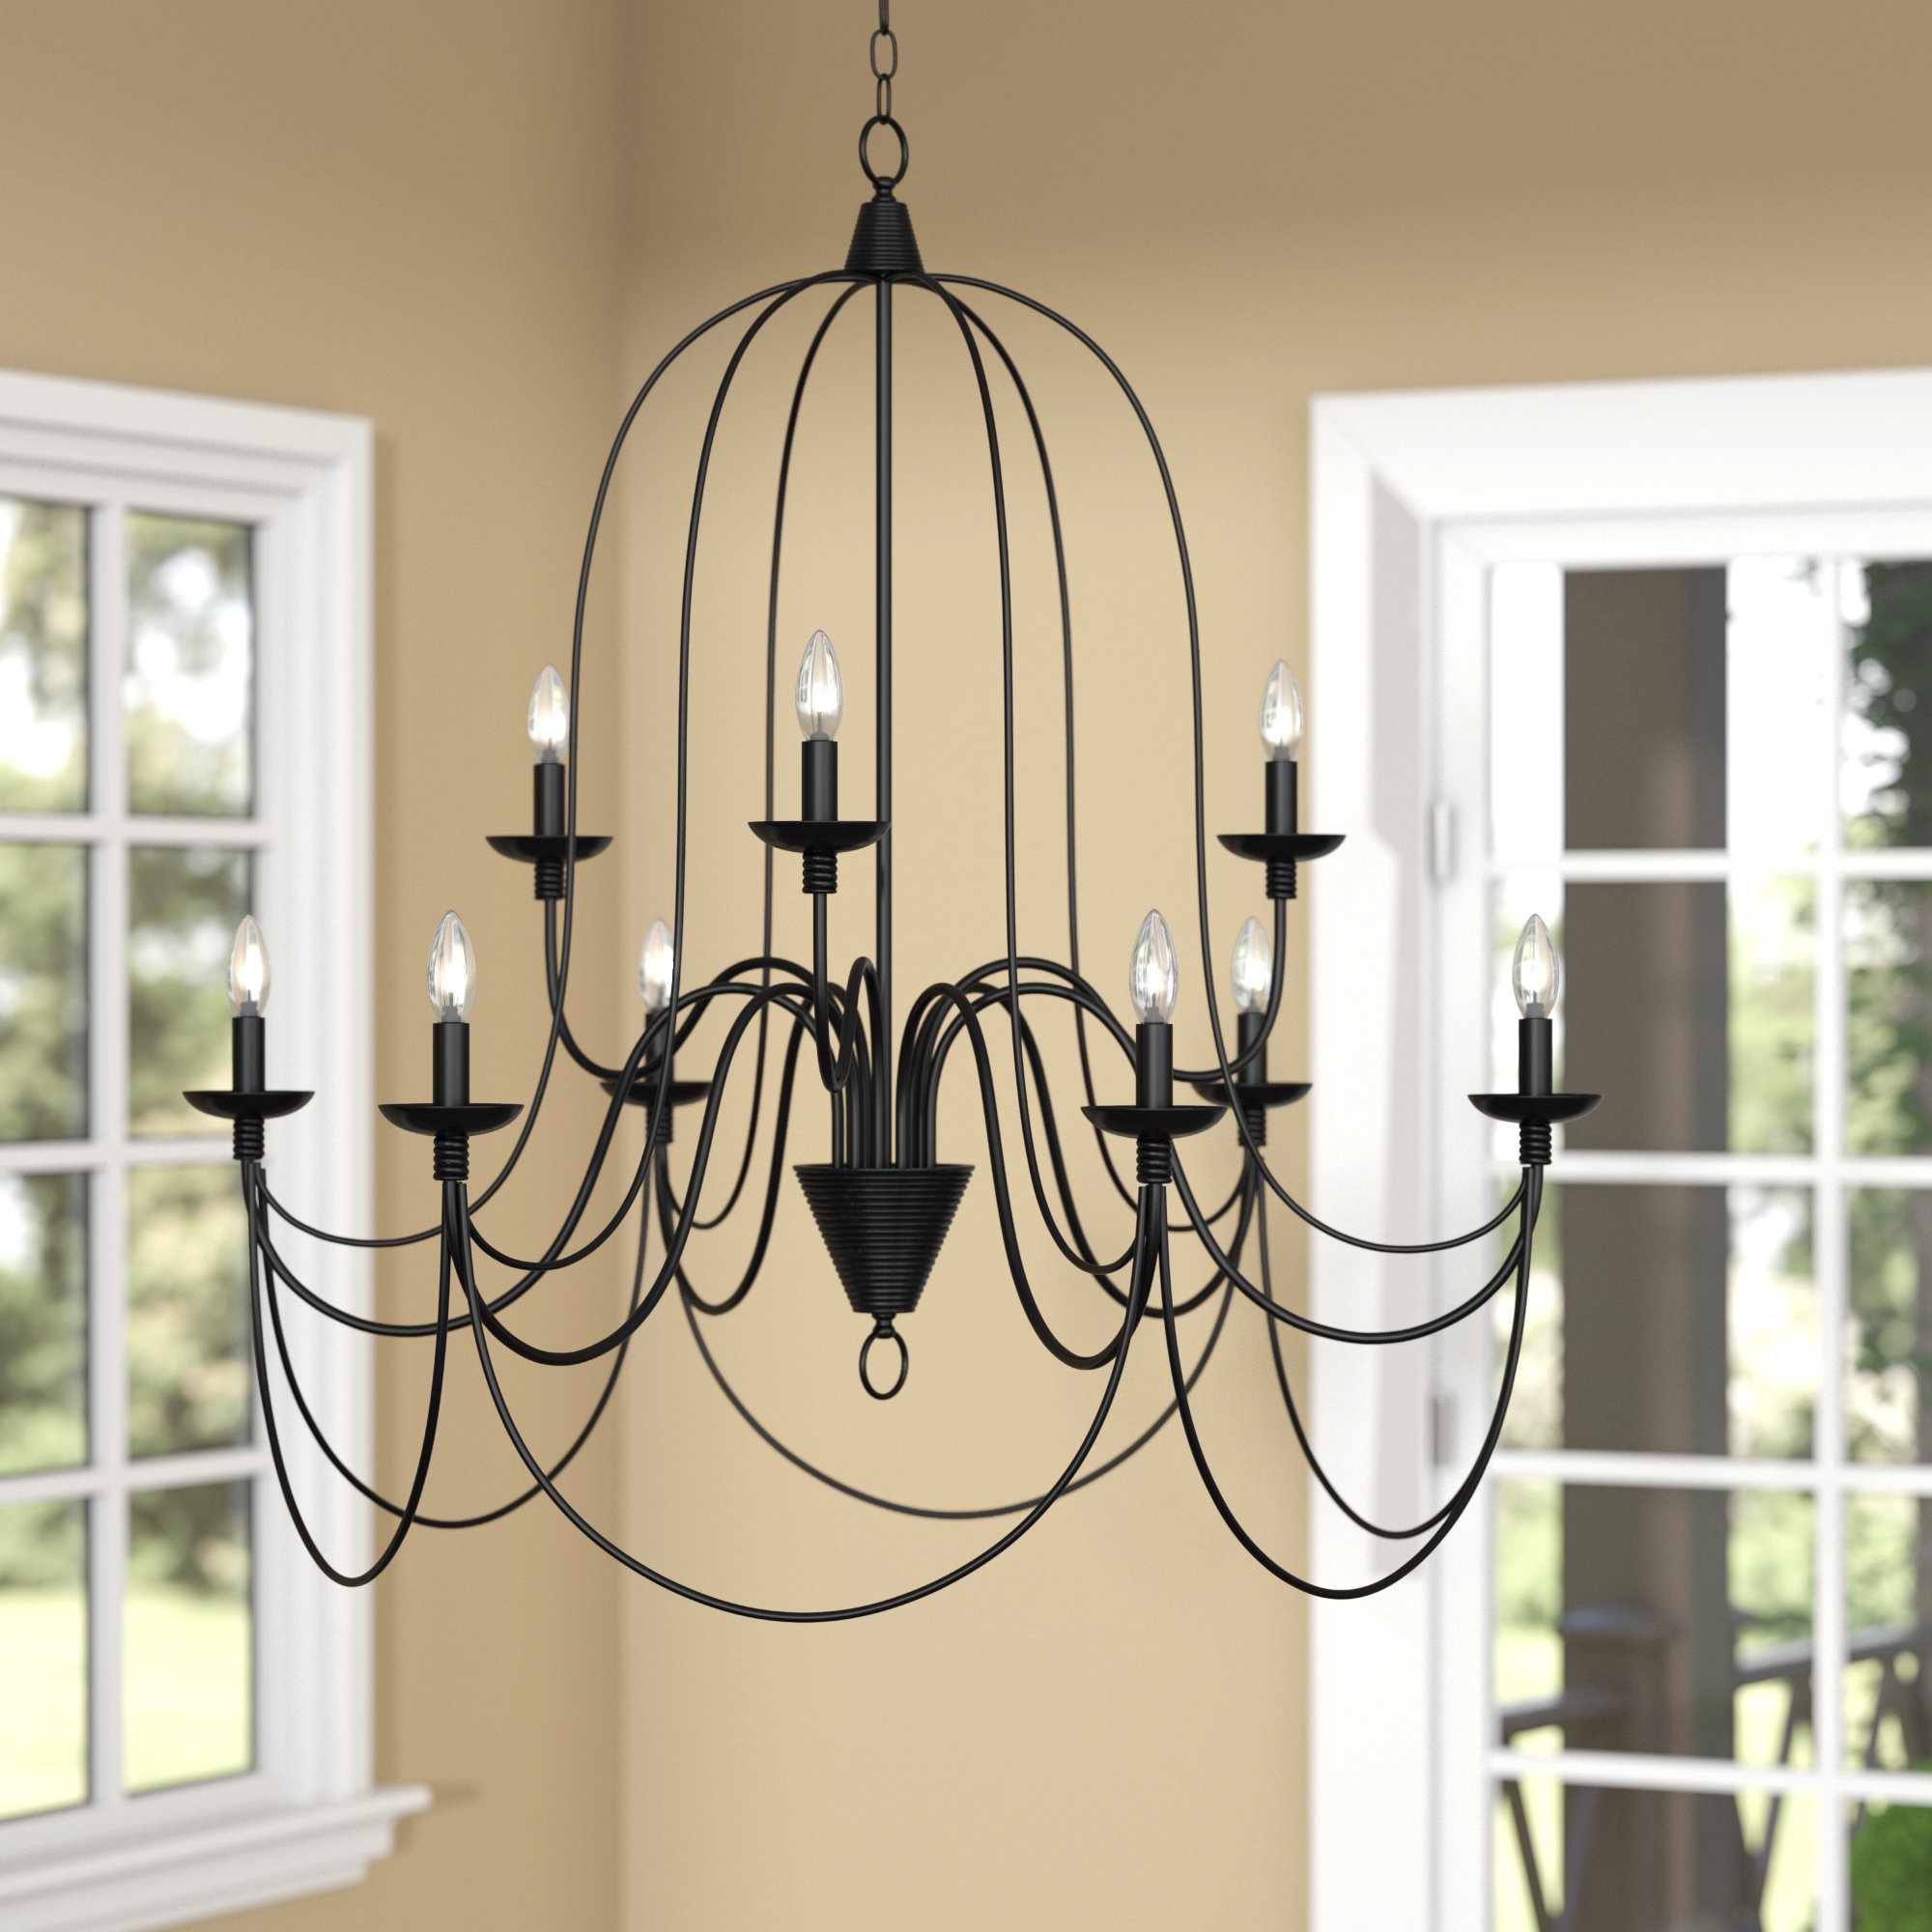 Popular Three Posts Watford 9 Light Candle Style Chandelier Intended For Camilla 9 Light Candle Style Chandeliers (View 18 of 20)